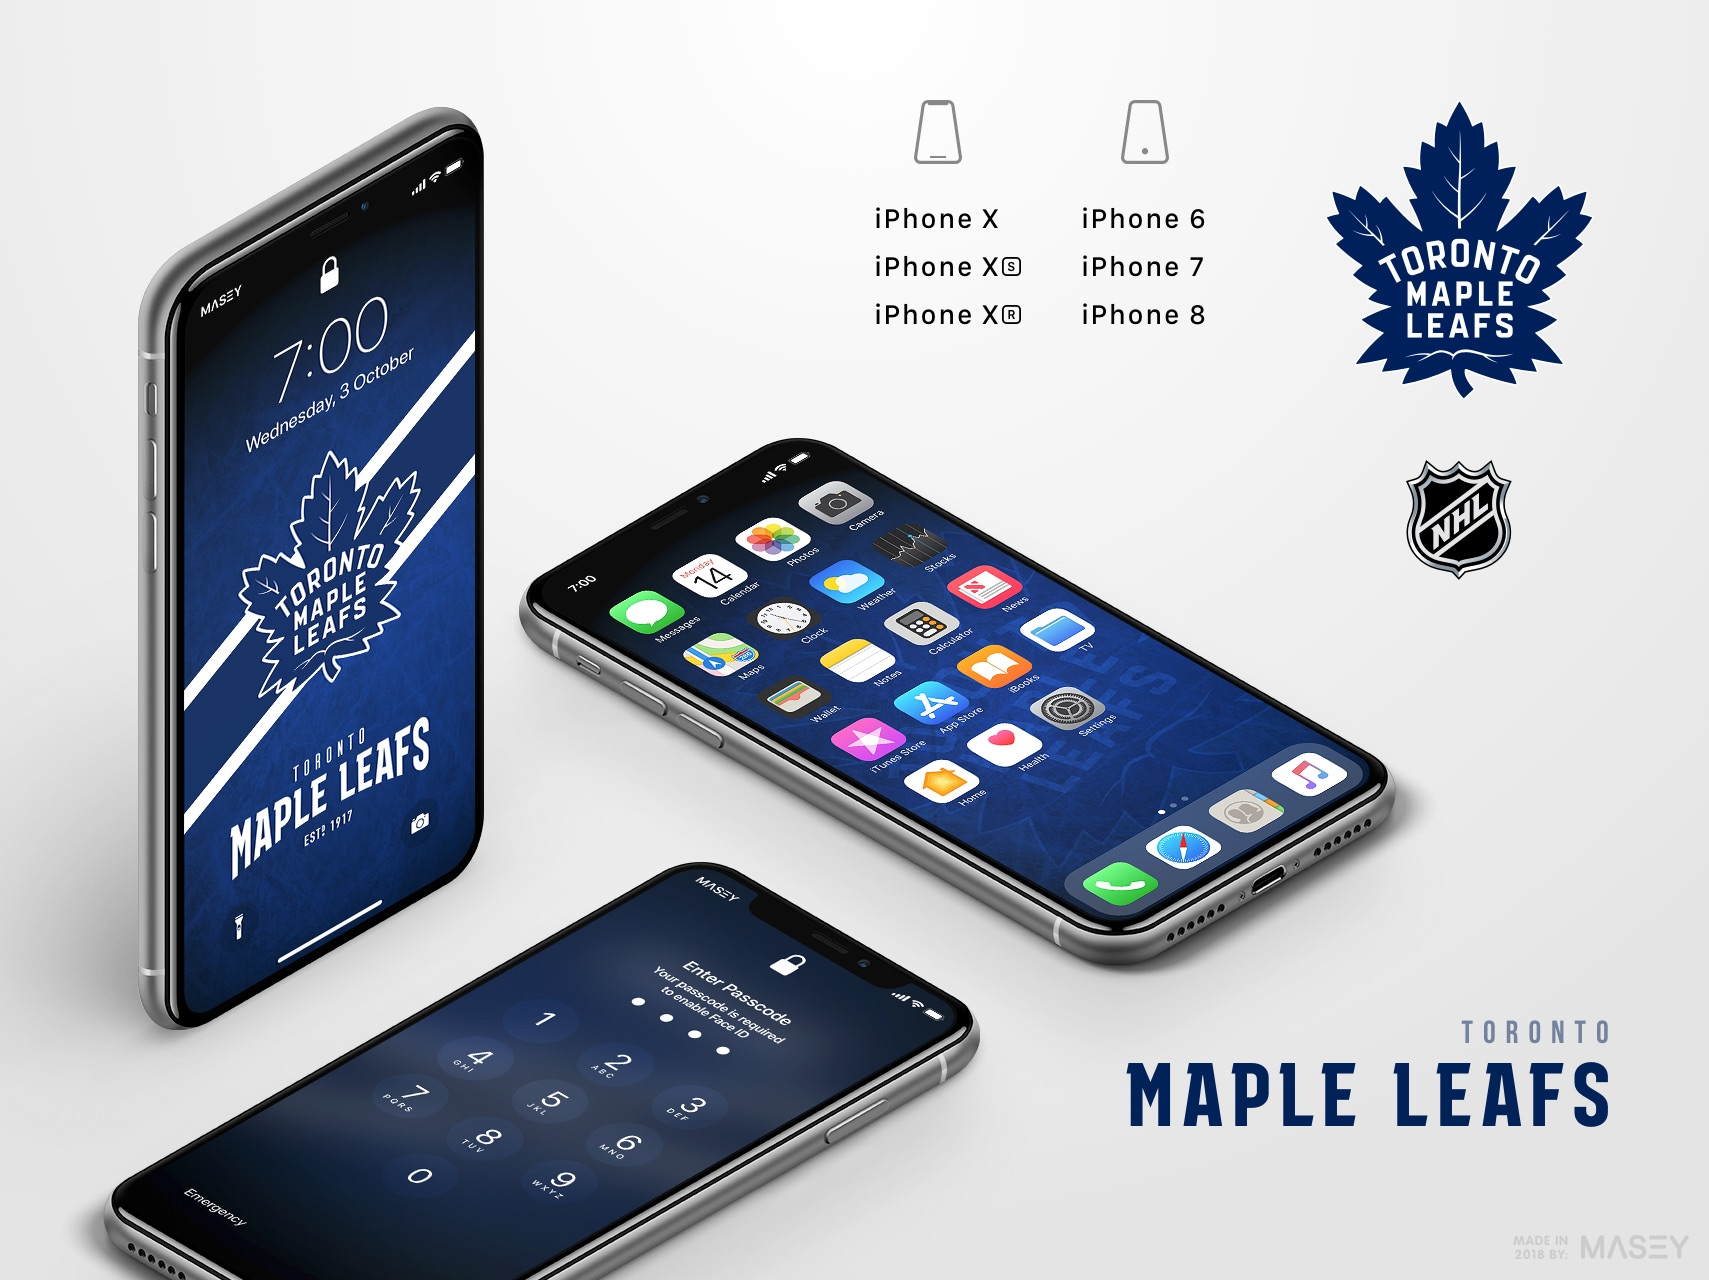 Toronto Maple Leafs iPhone Wallpaper